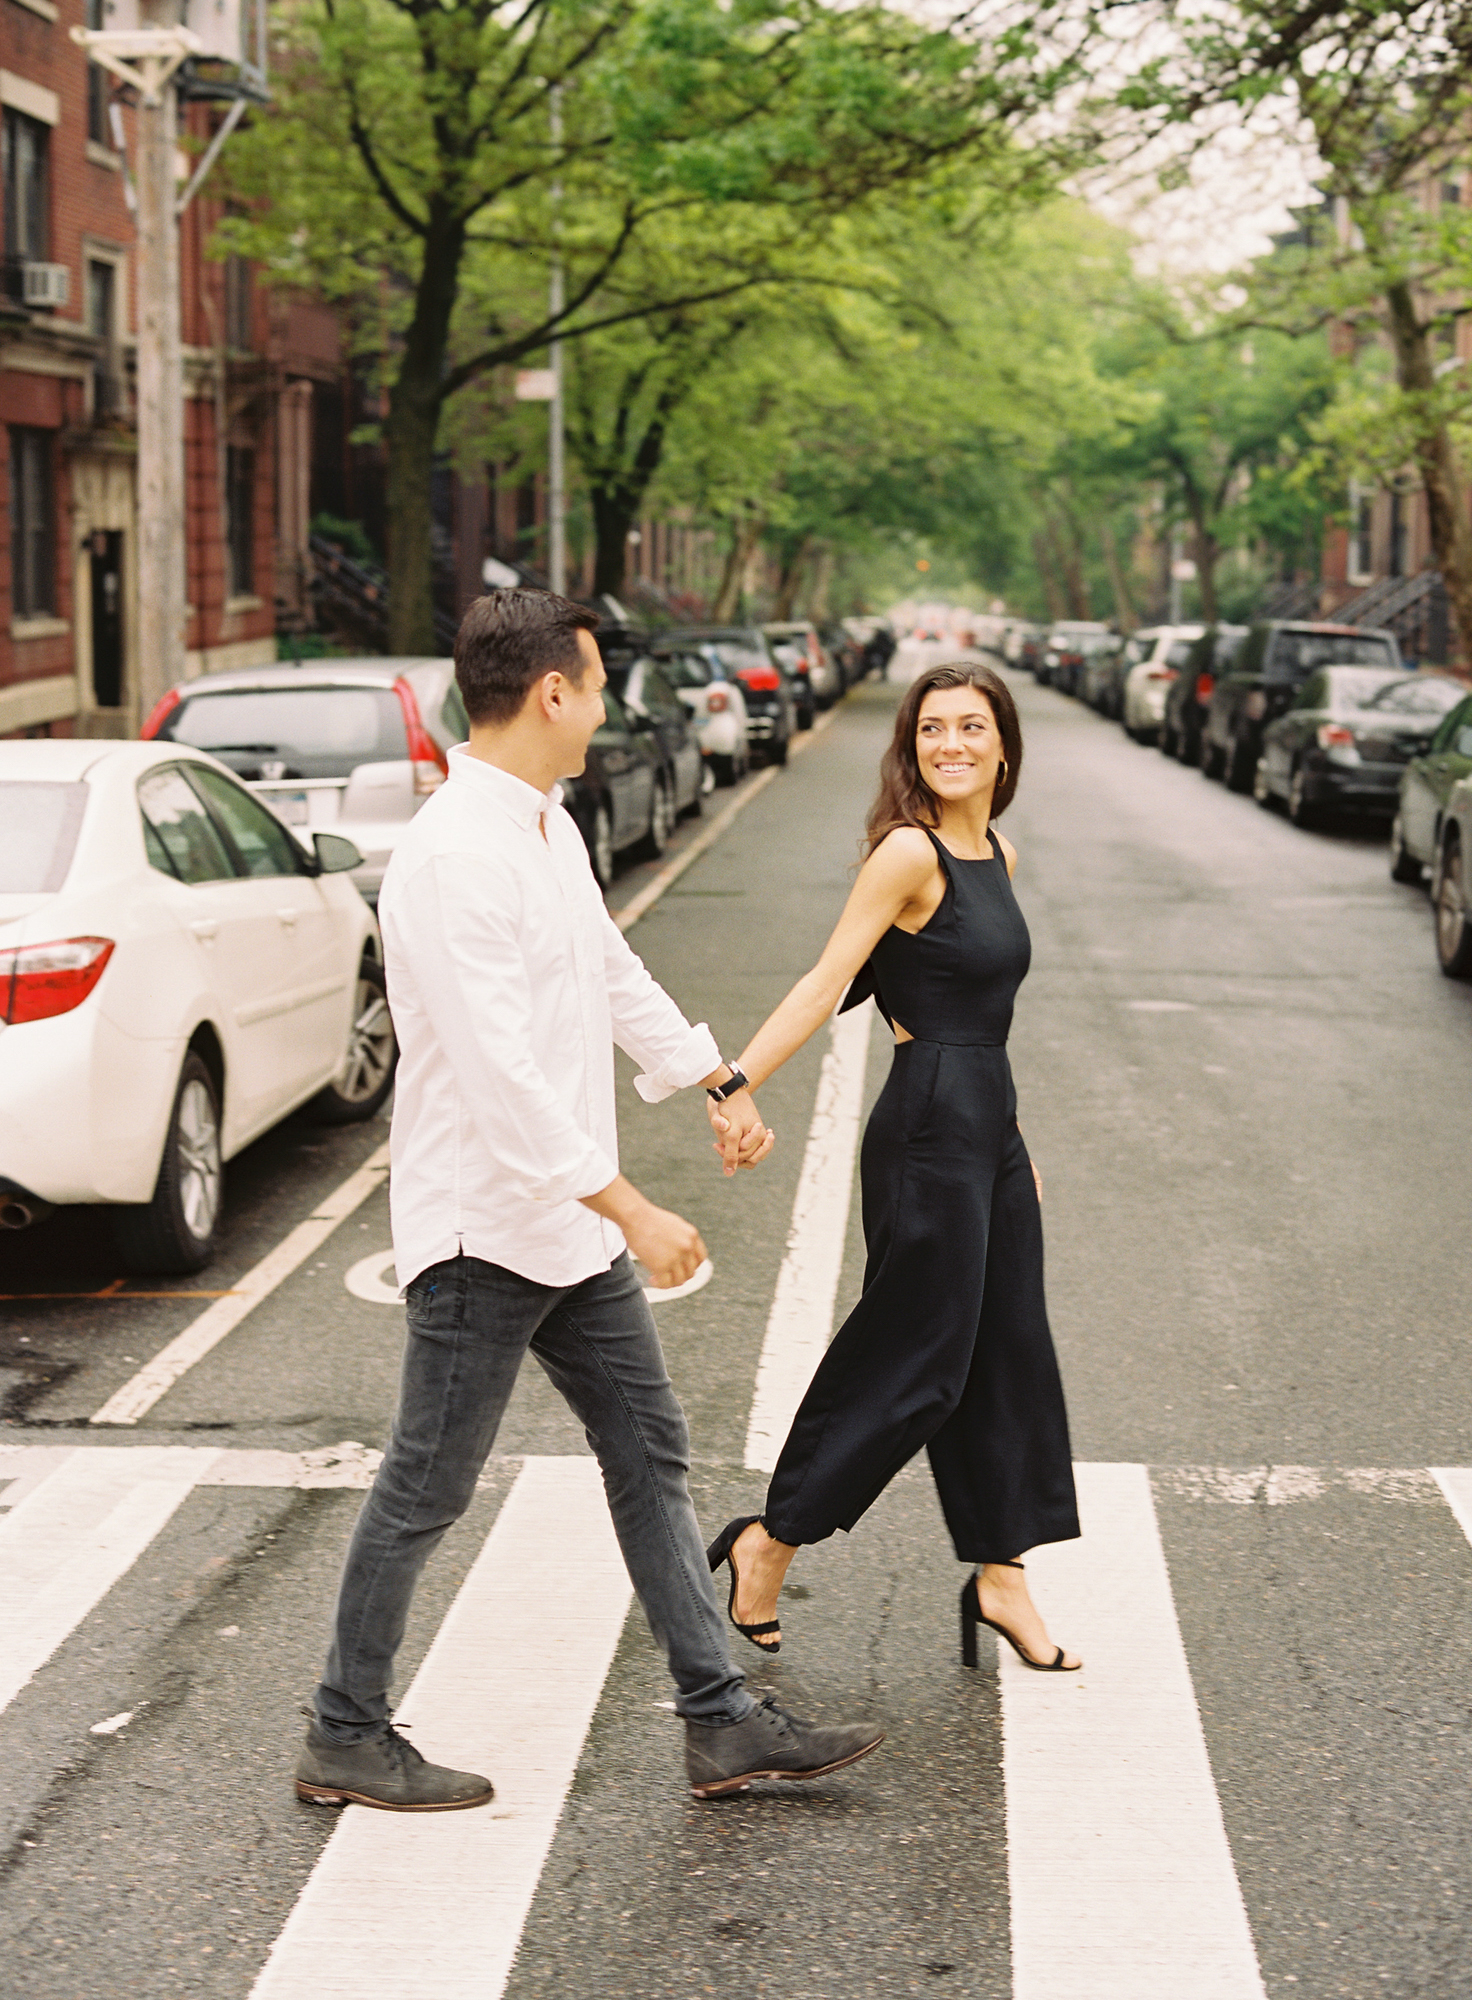 brooklyn-engagement-photos-008.jpg